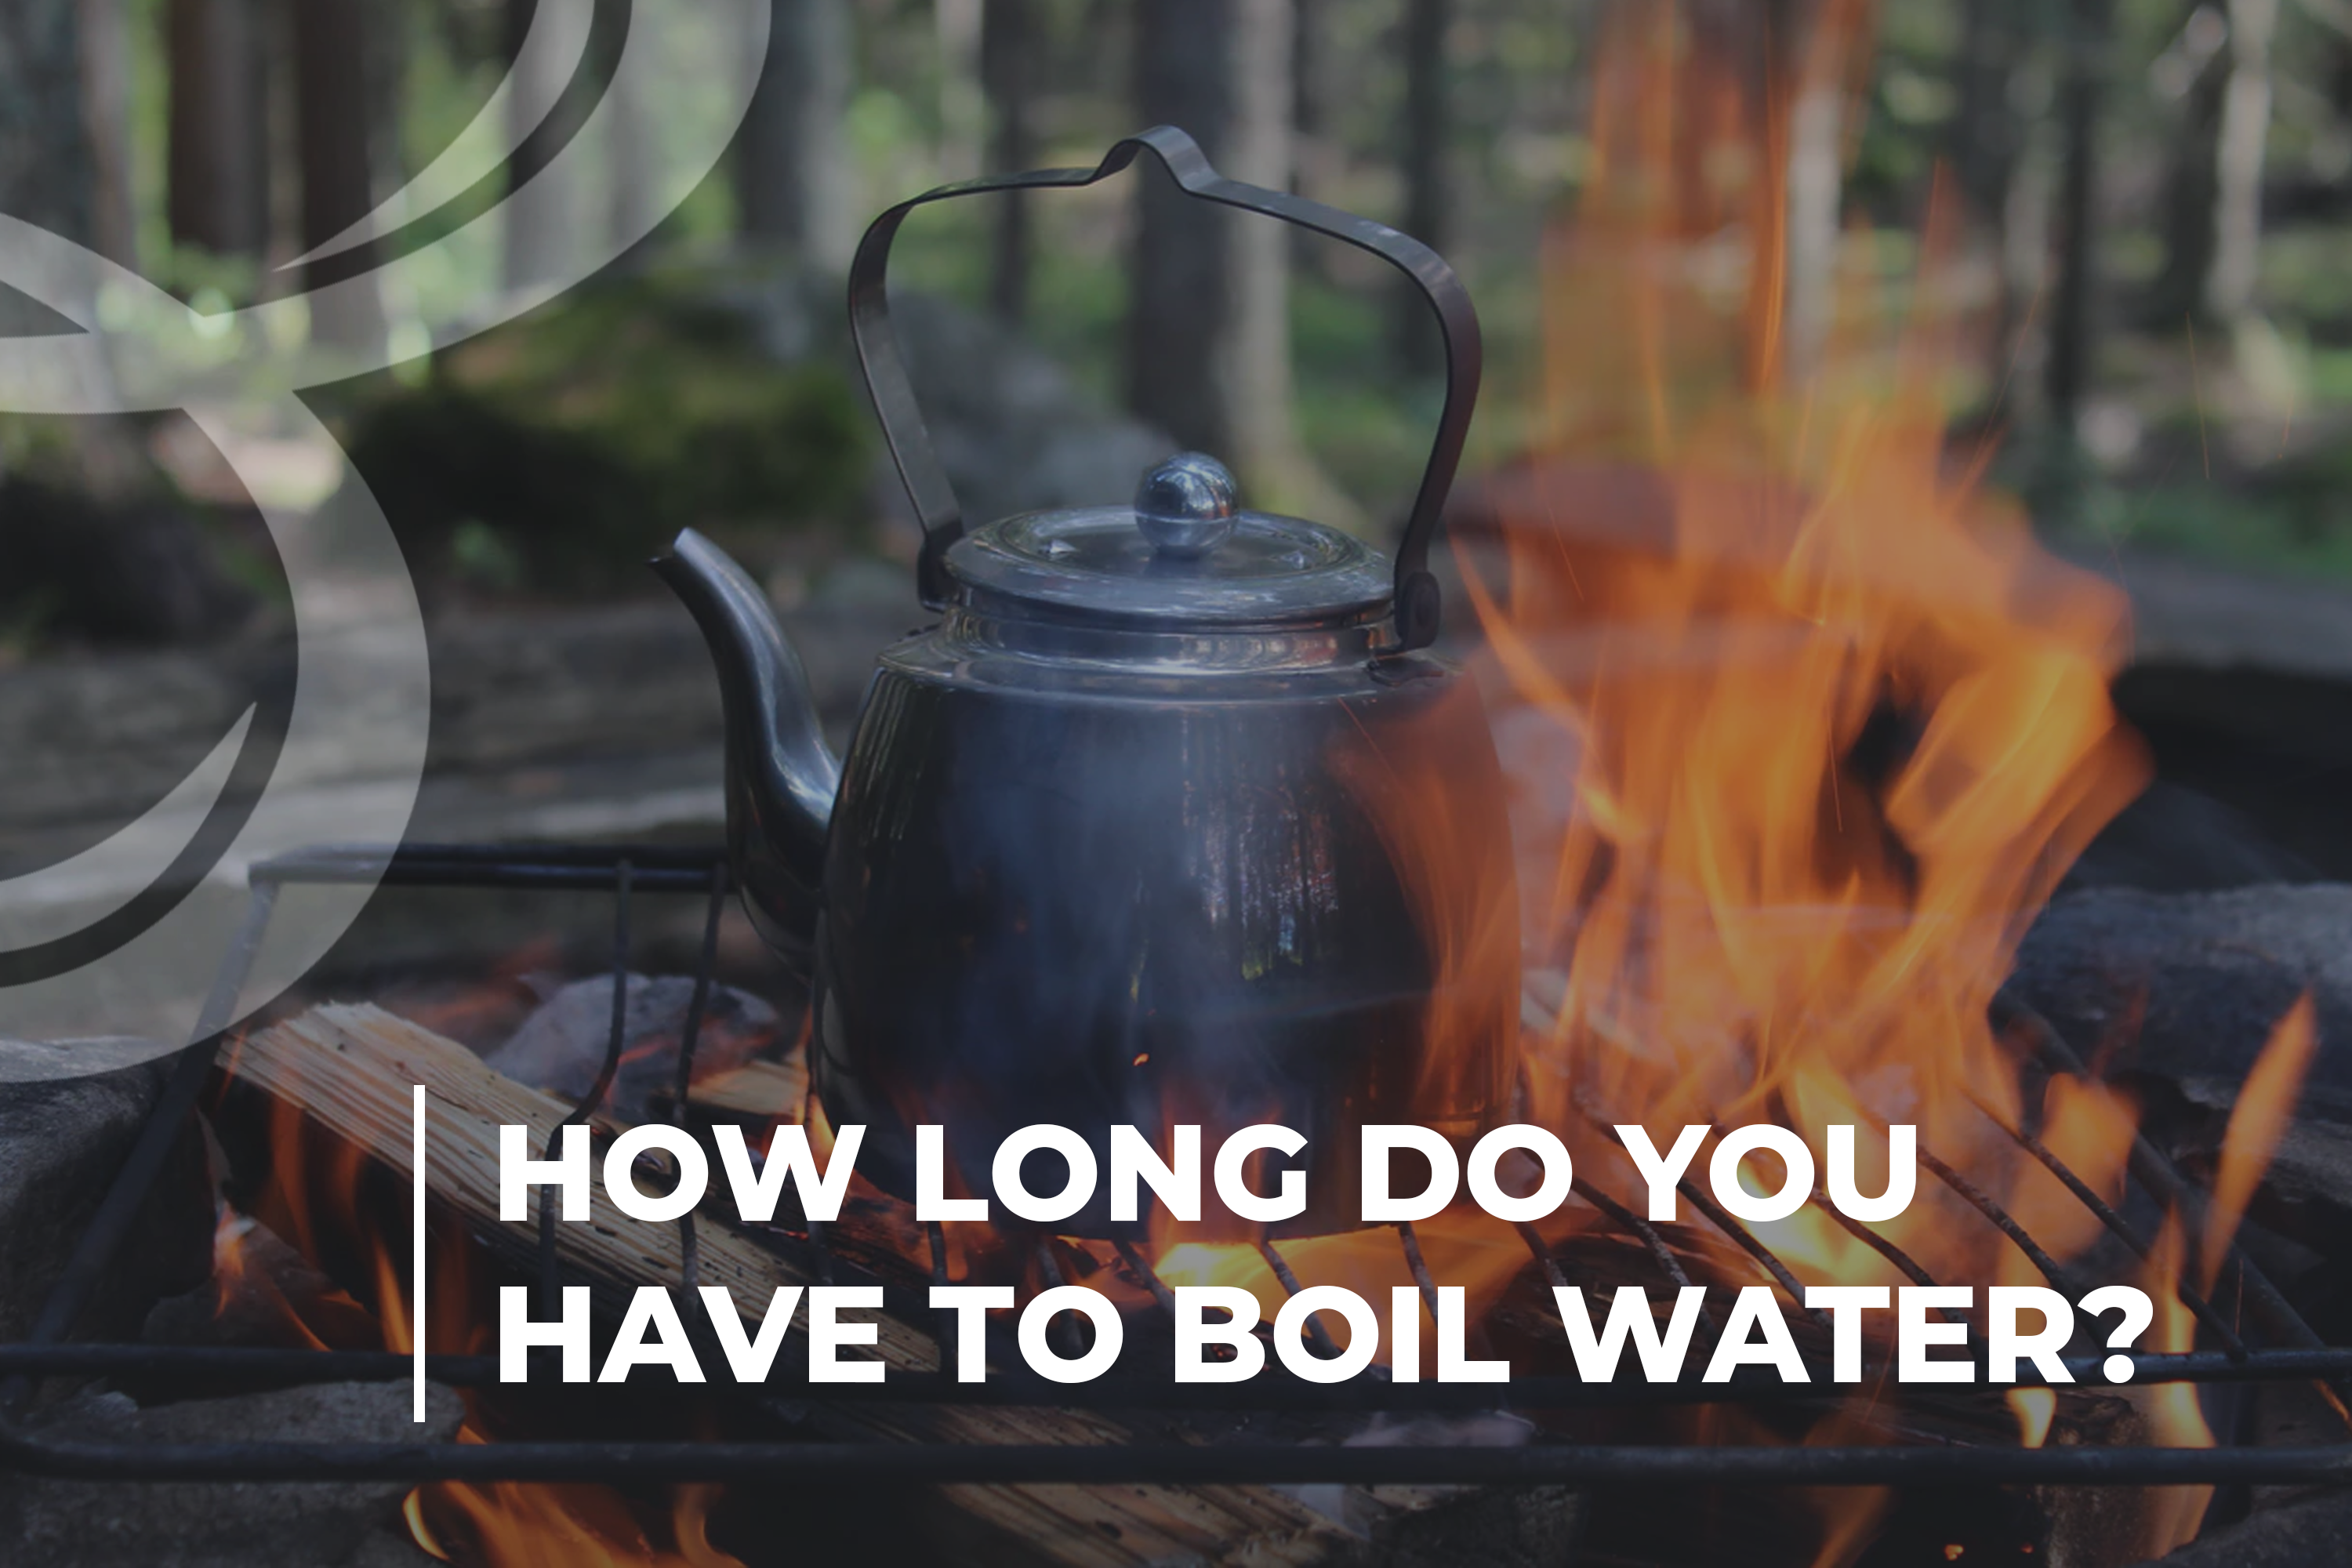 How long do you have to boil water